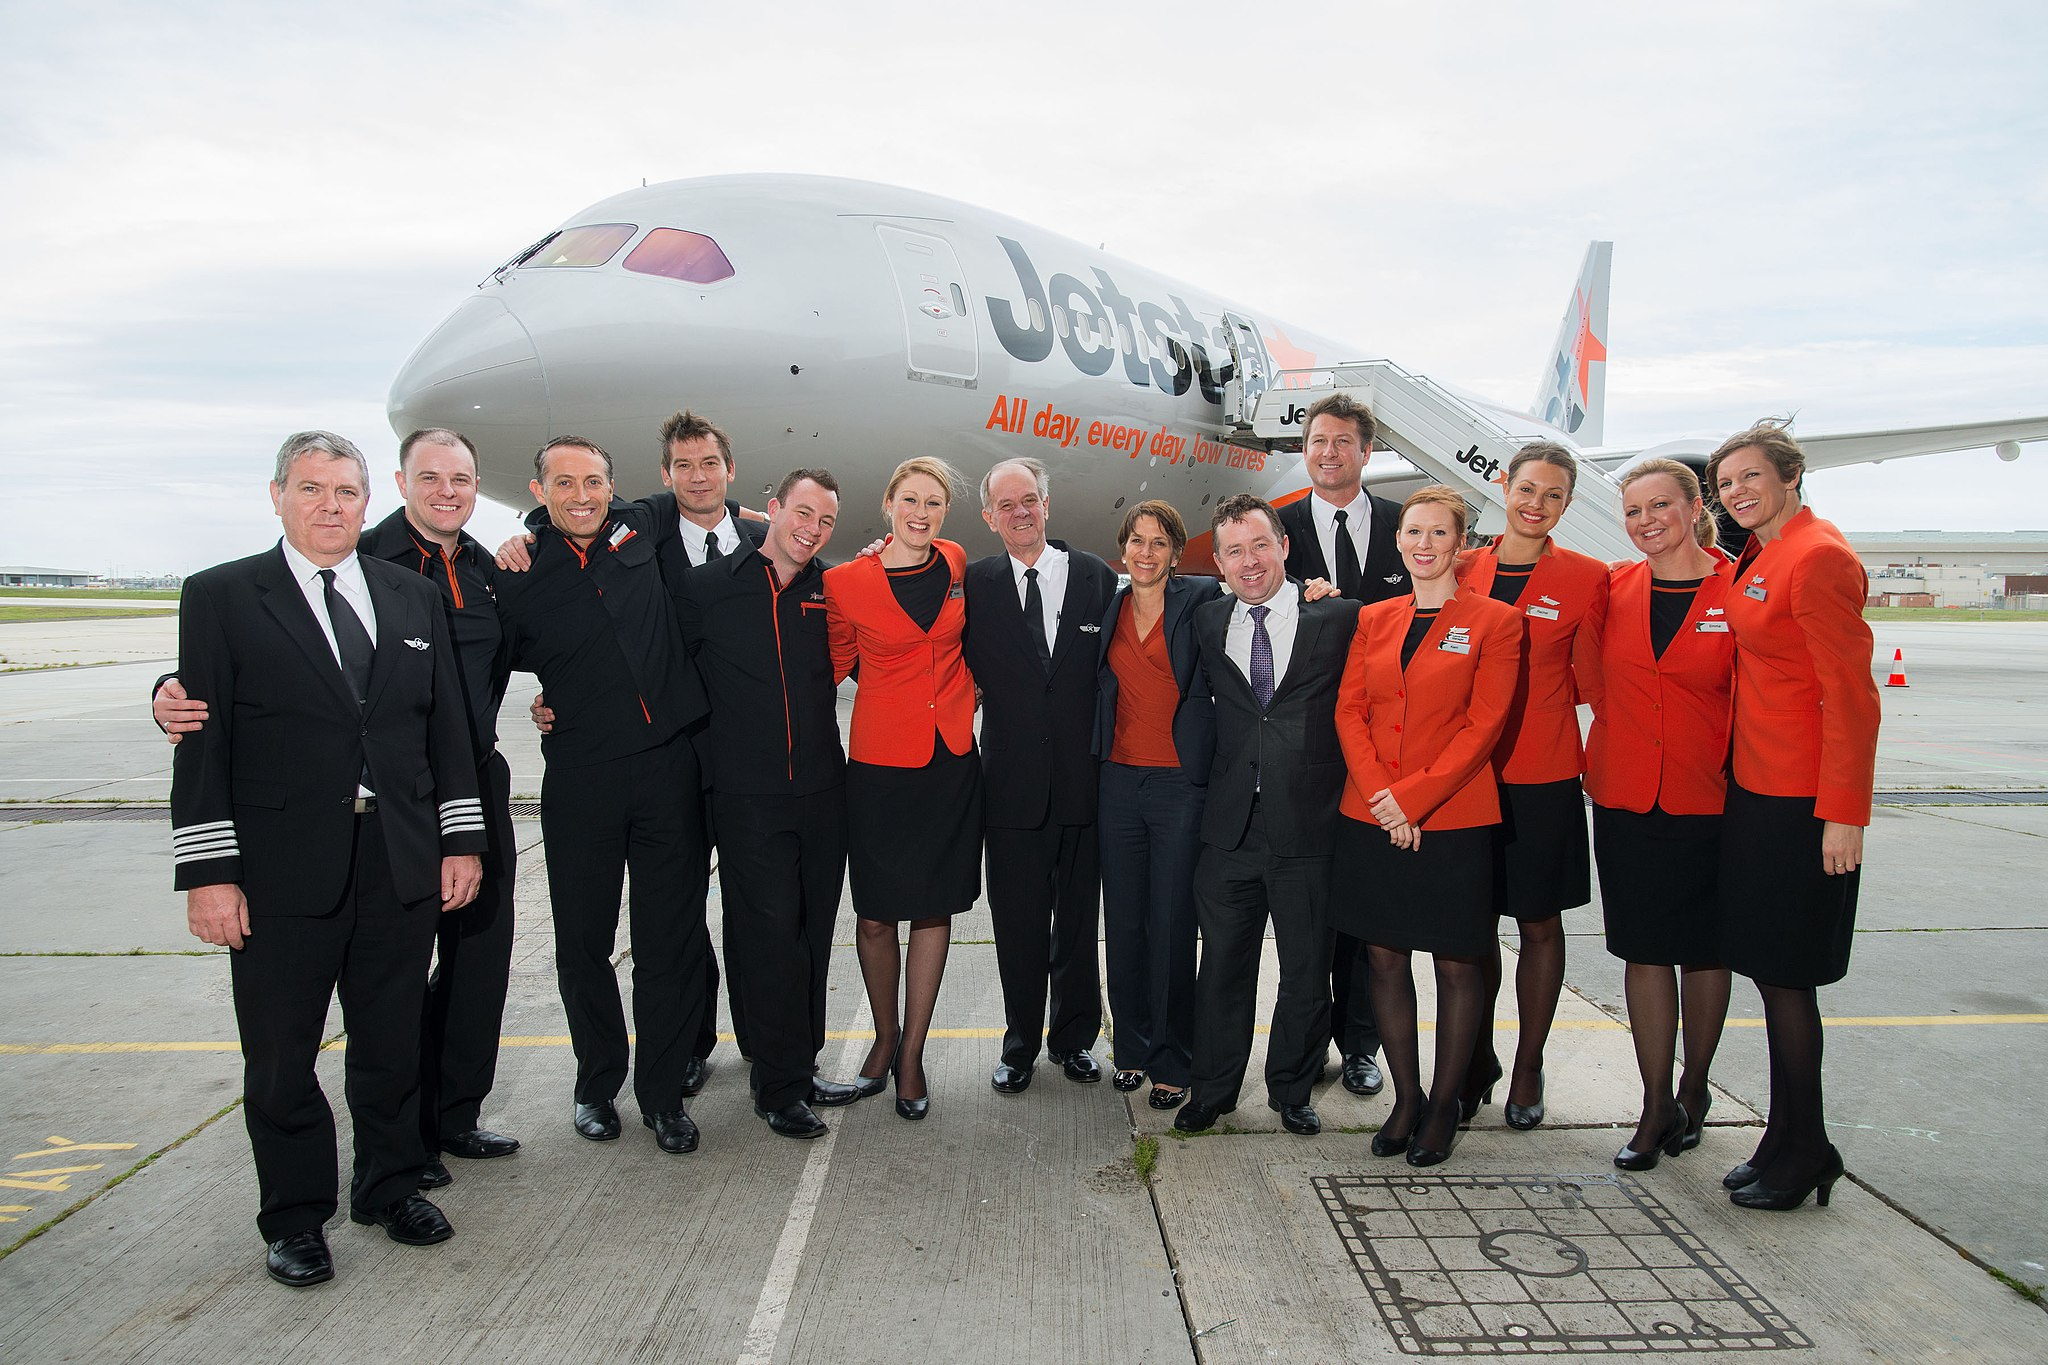 Image of a Jetstar Airways flight crew with a 787 Dreamliner behind them.